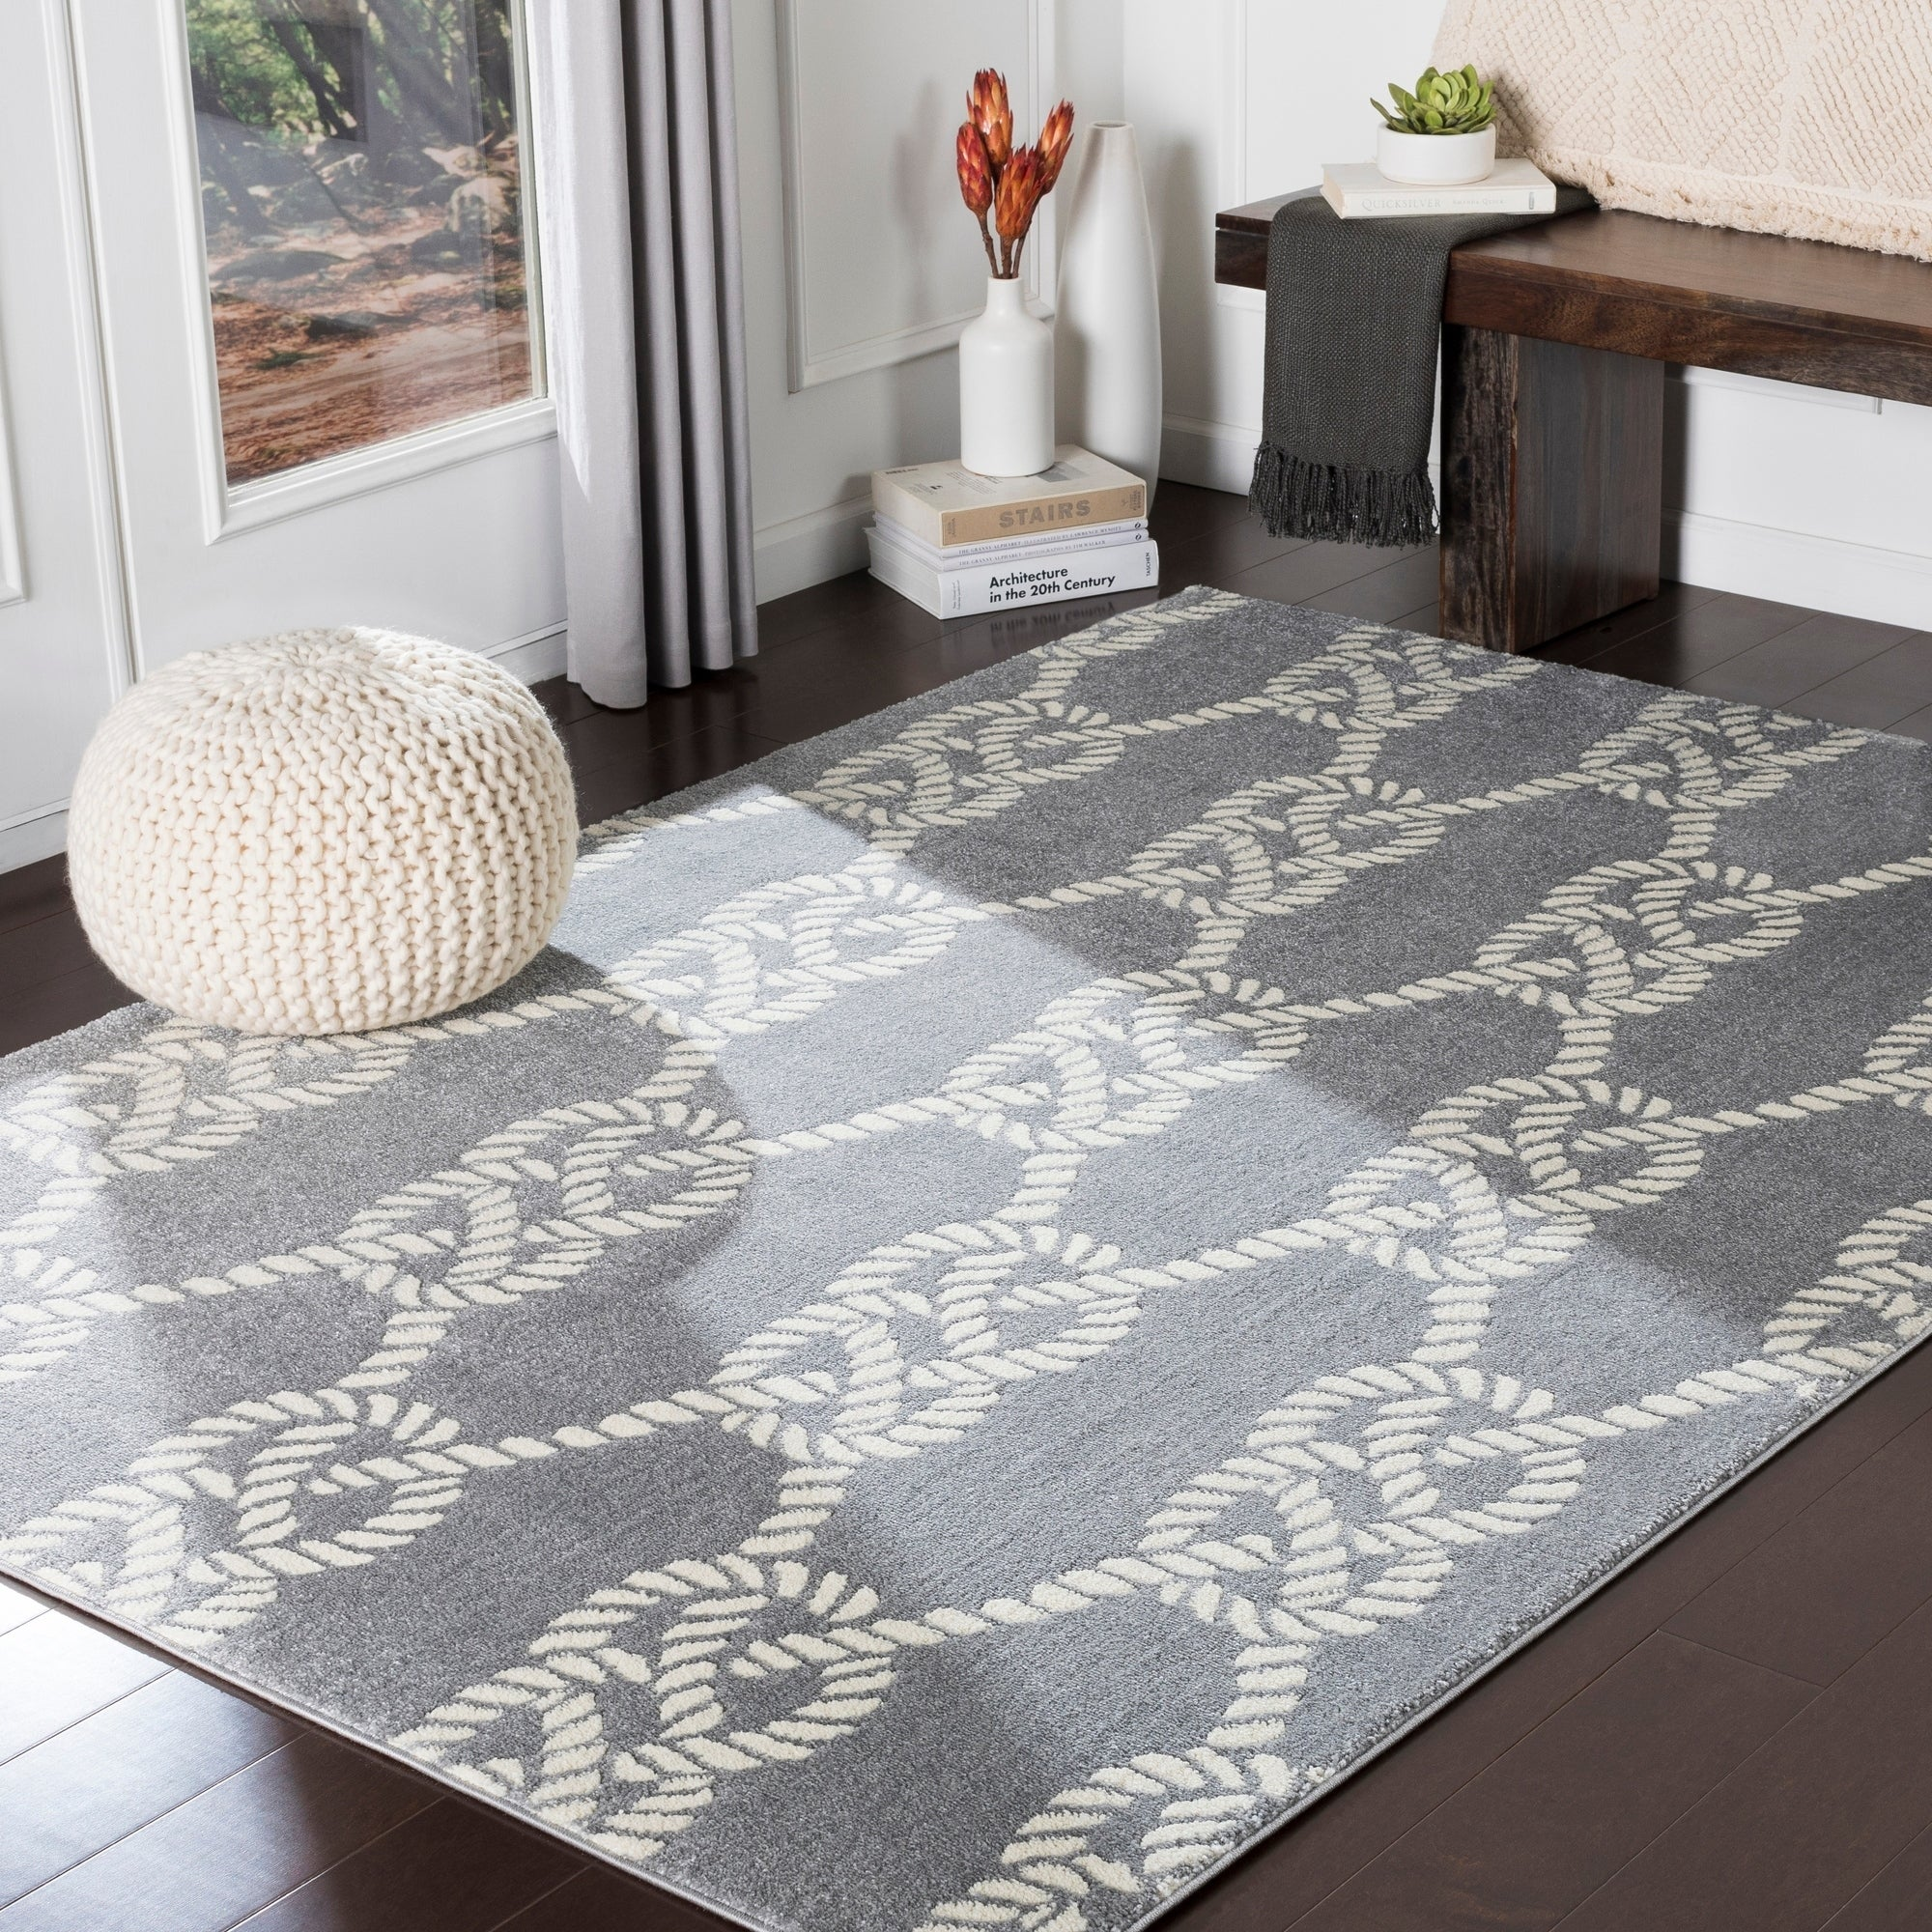 Jessamine Grey Nautical Rope Area Rug 5 3 X 7 3 On Sale Overstock 24046195